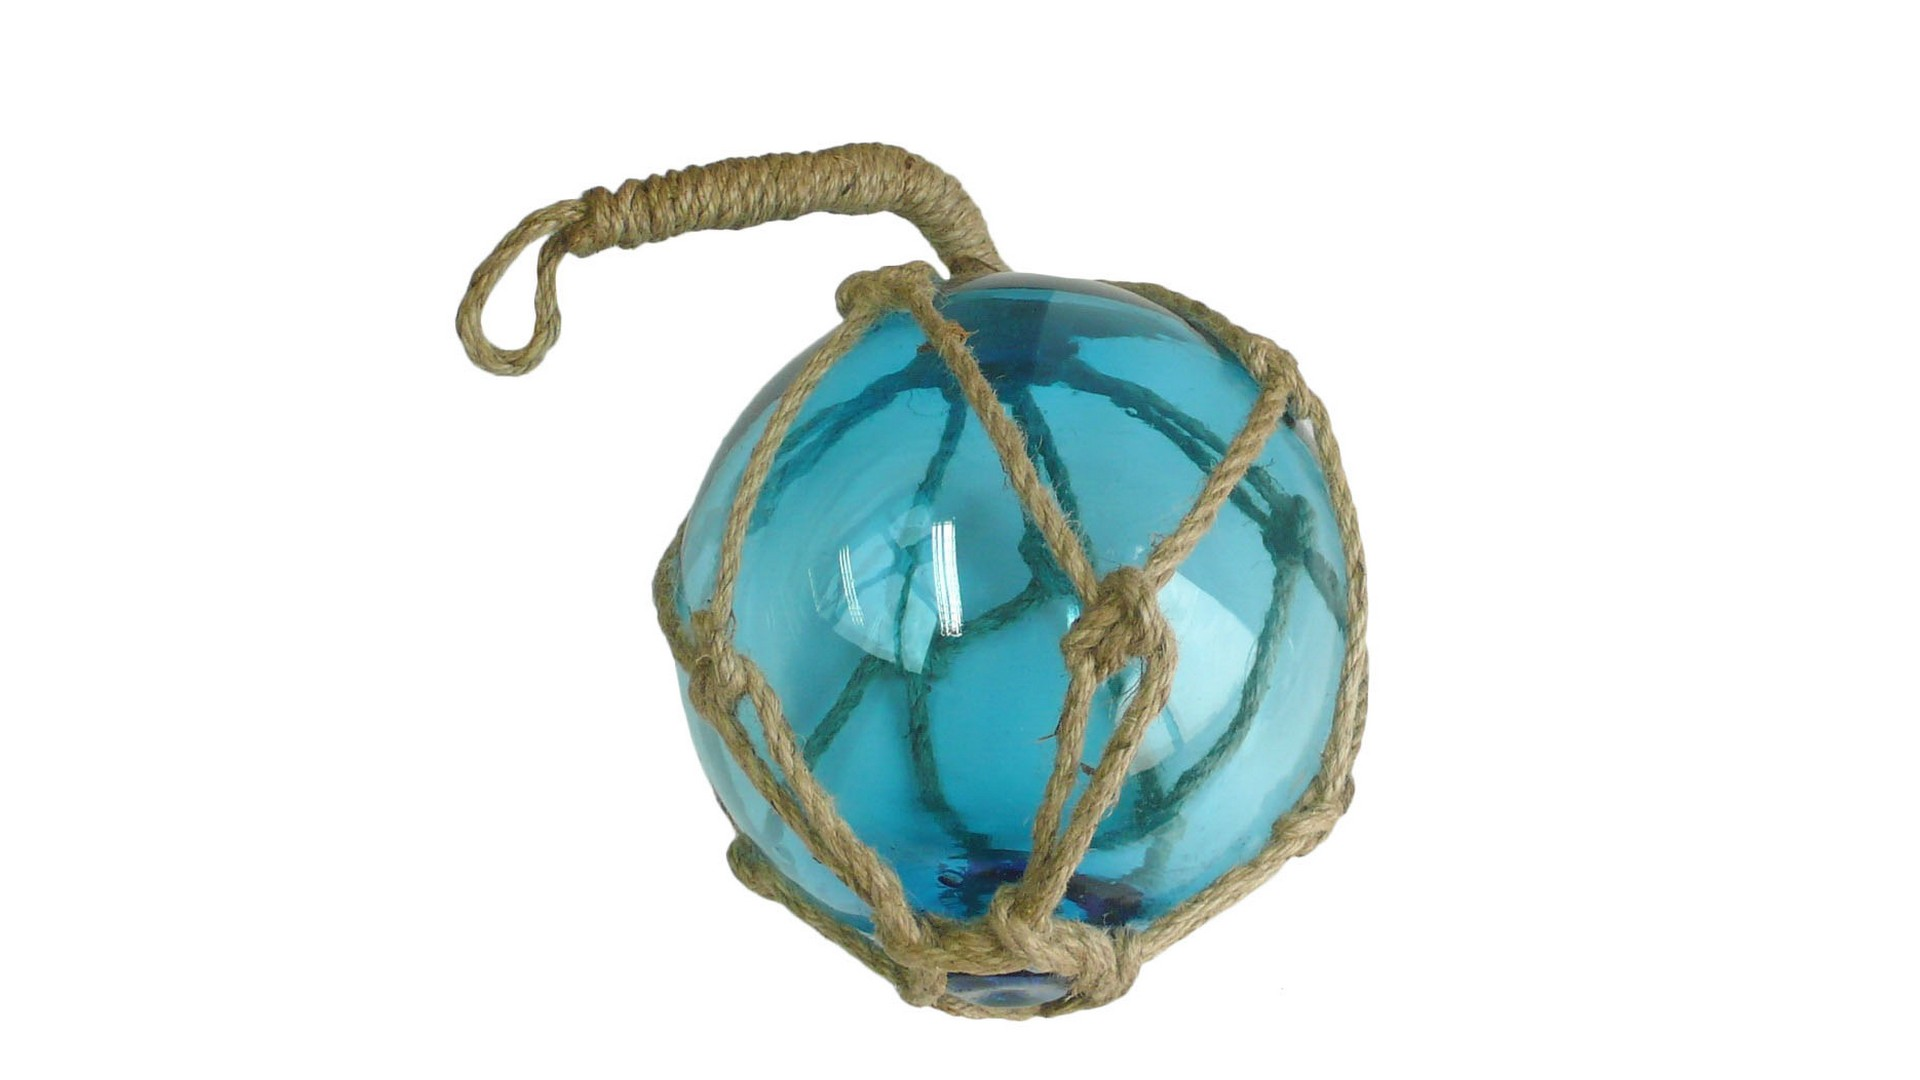 8 inch Light Blue Glass Buoy on a Rope